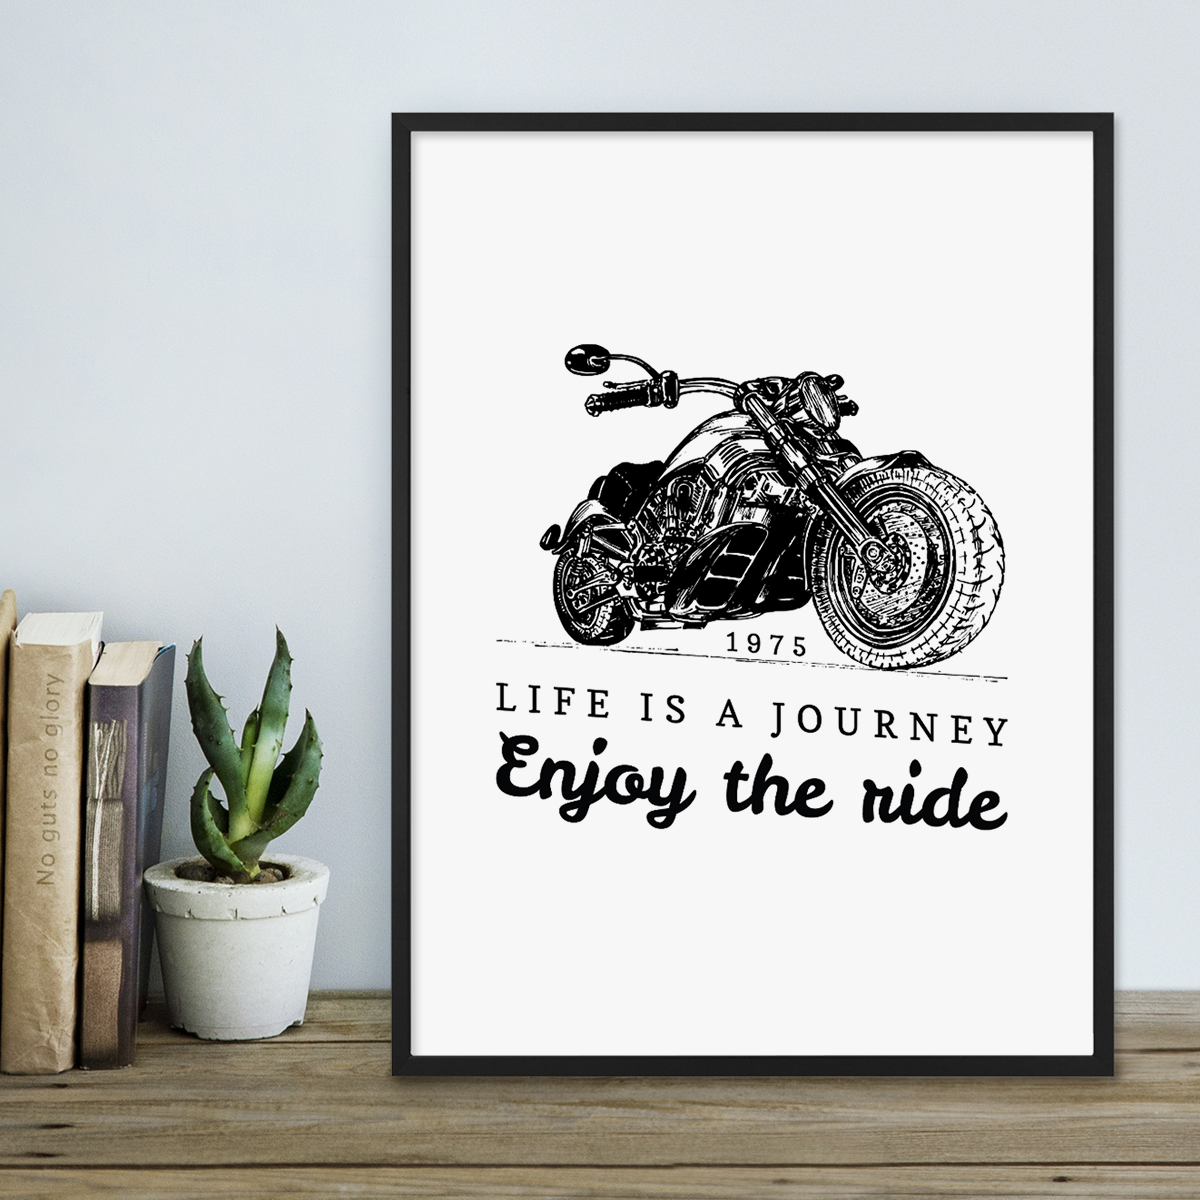 poster mit bilderrahmen schwarz 39 journey 39 30x40 cm schwarz weiss motiv spruch biker typographie. Black Bedroom Furniture Sets. Home Design Ideas